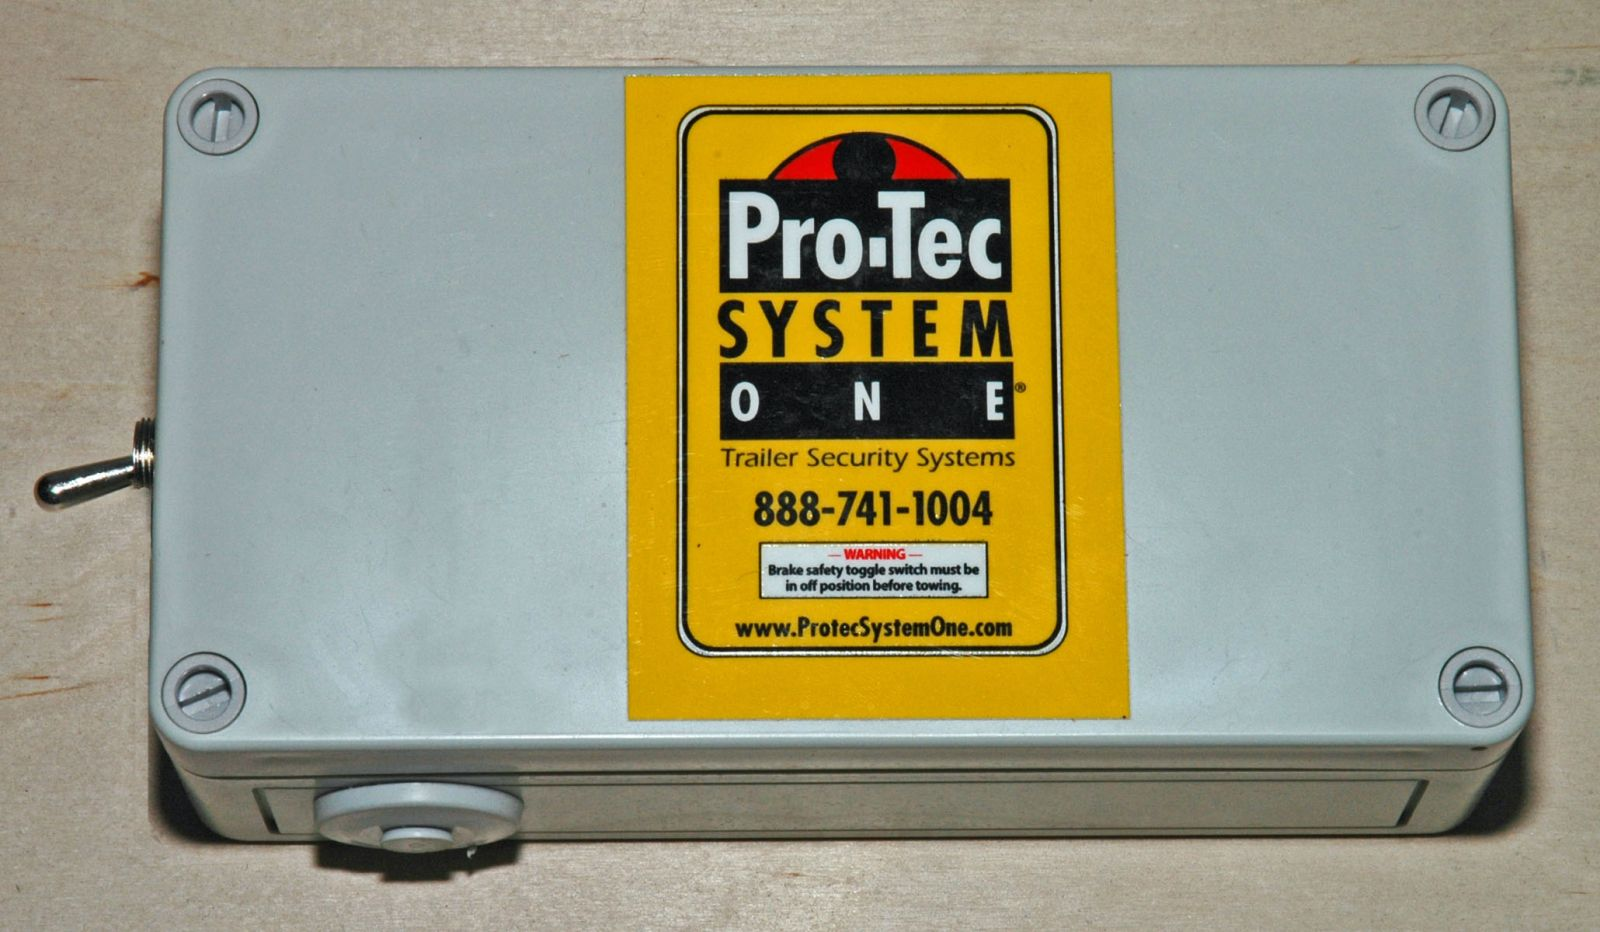 Installing Trailer Alarms – Pro-Tec System One